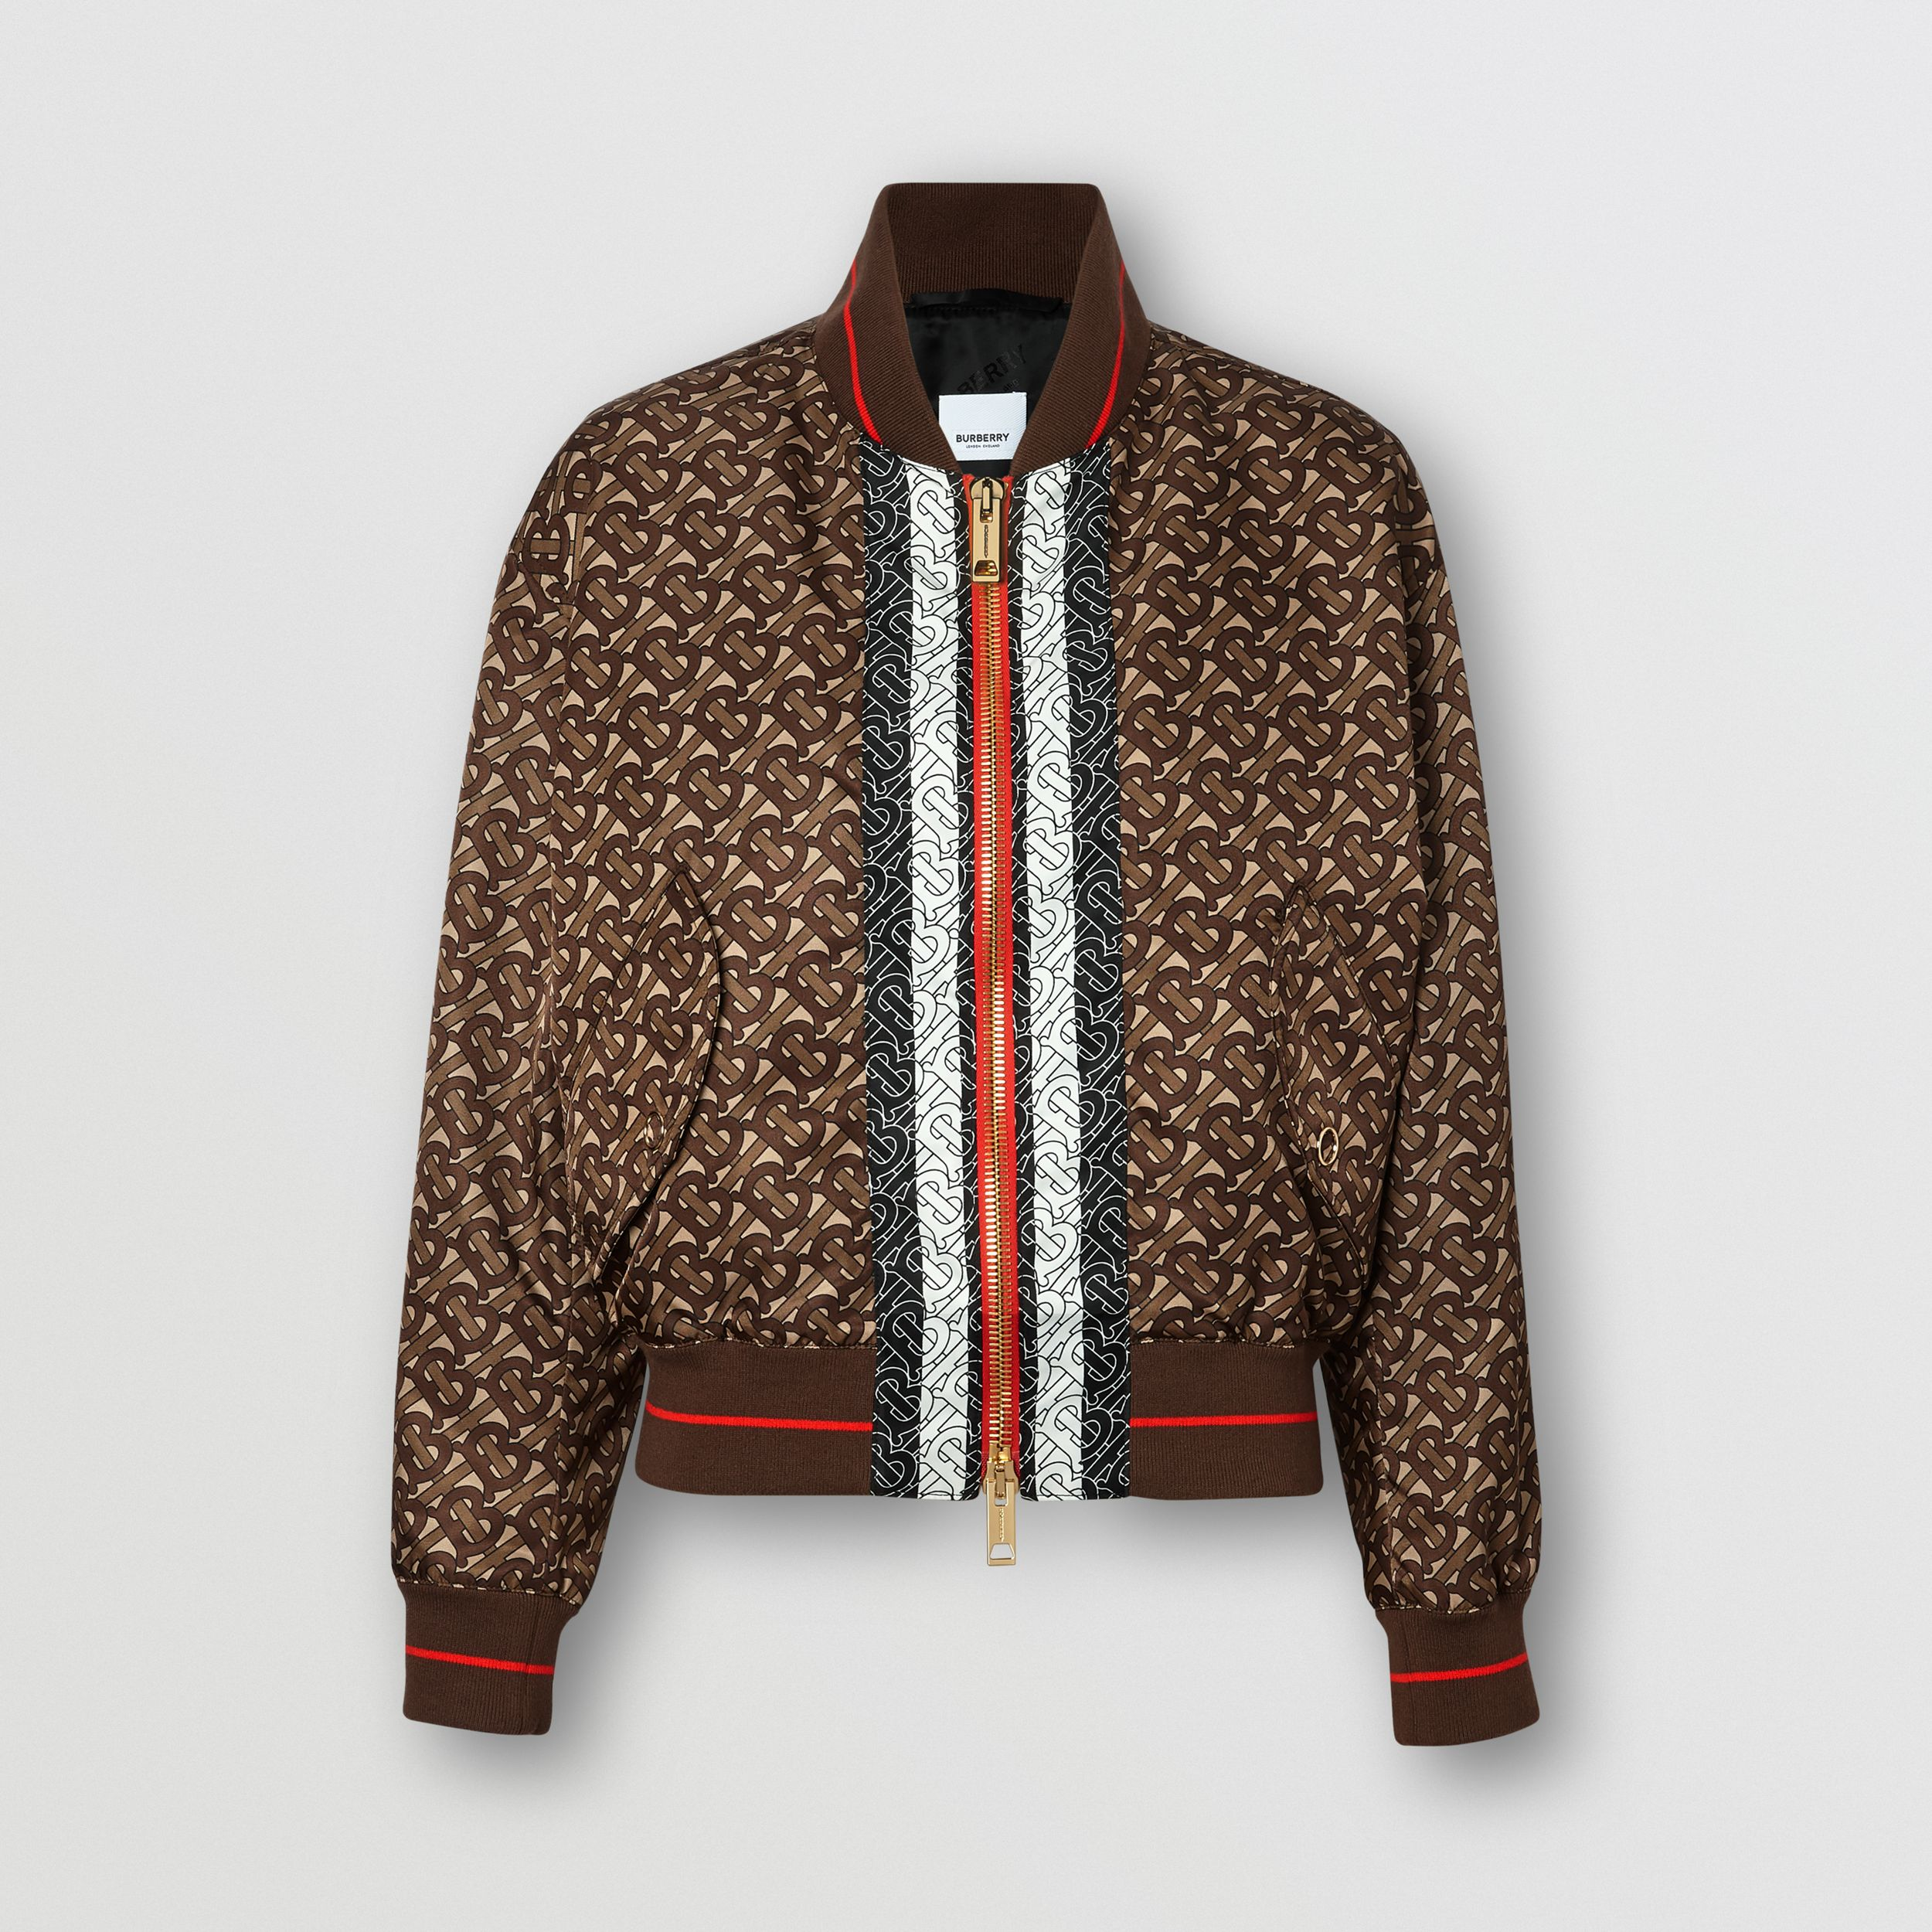 Monogram Stripe Print Nylon Bomber Jacket in Bridle Brown - Women | Burberry Canada - 4